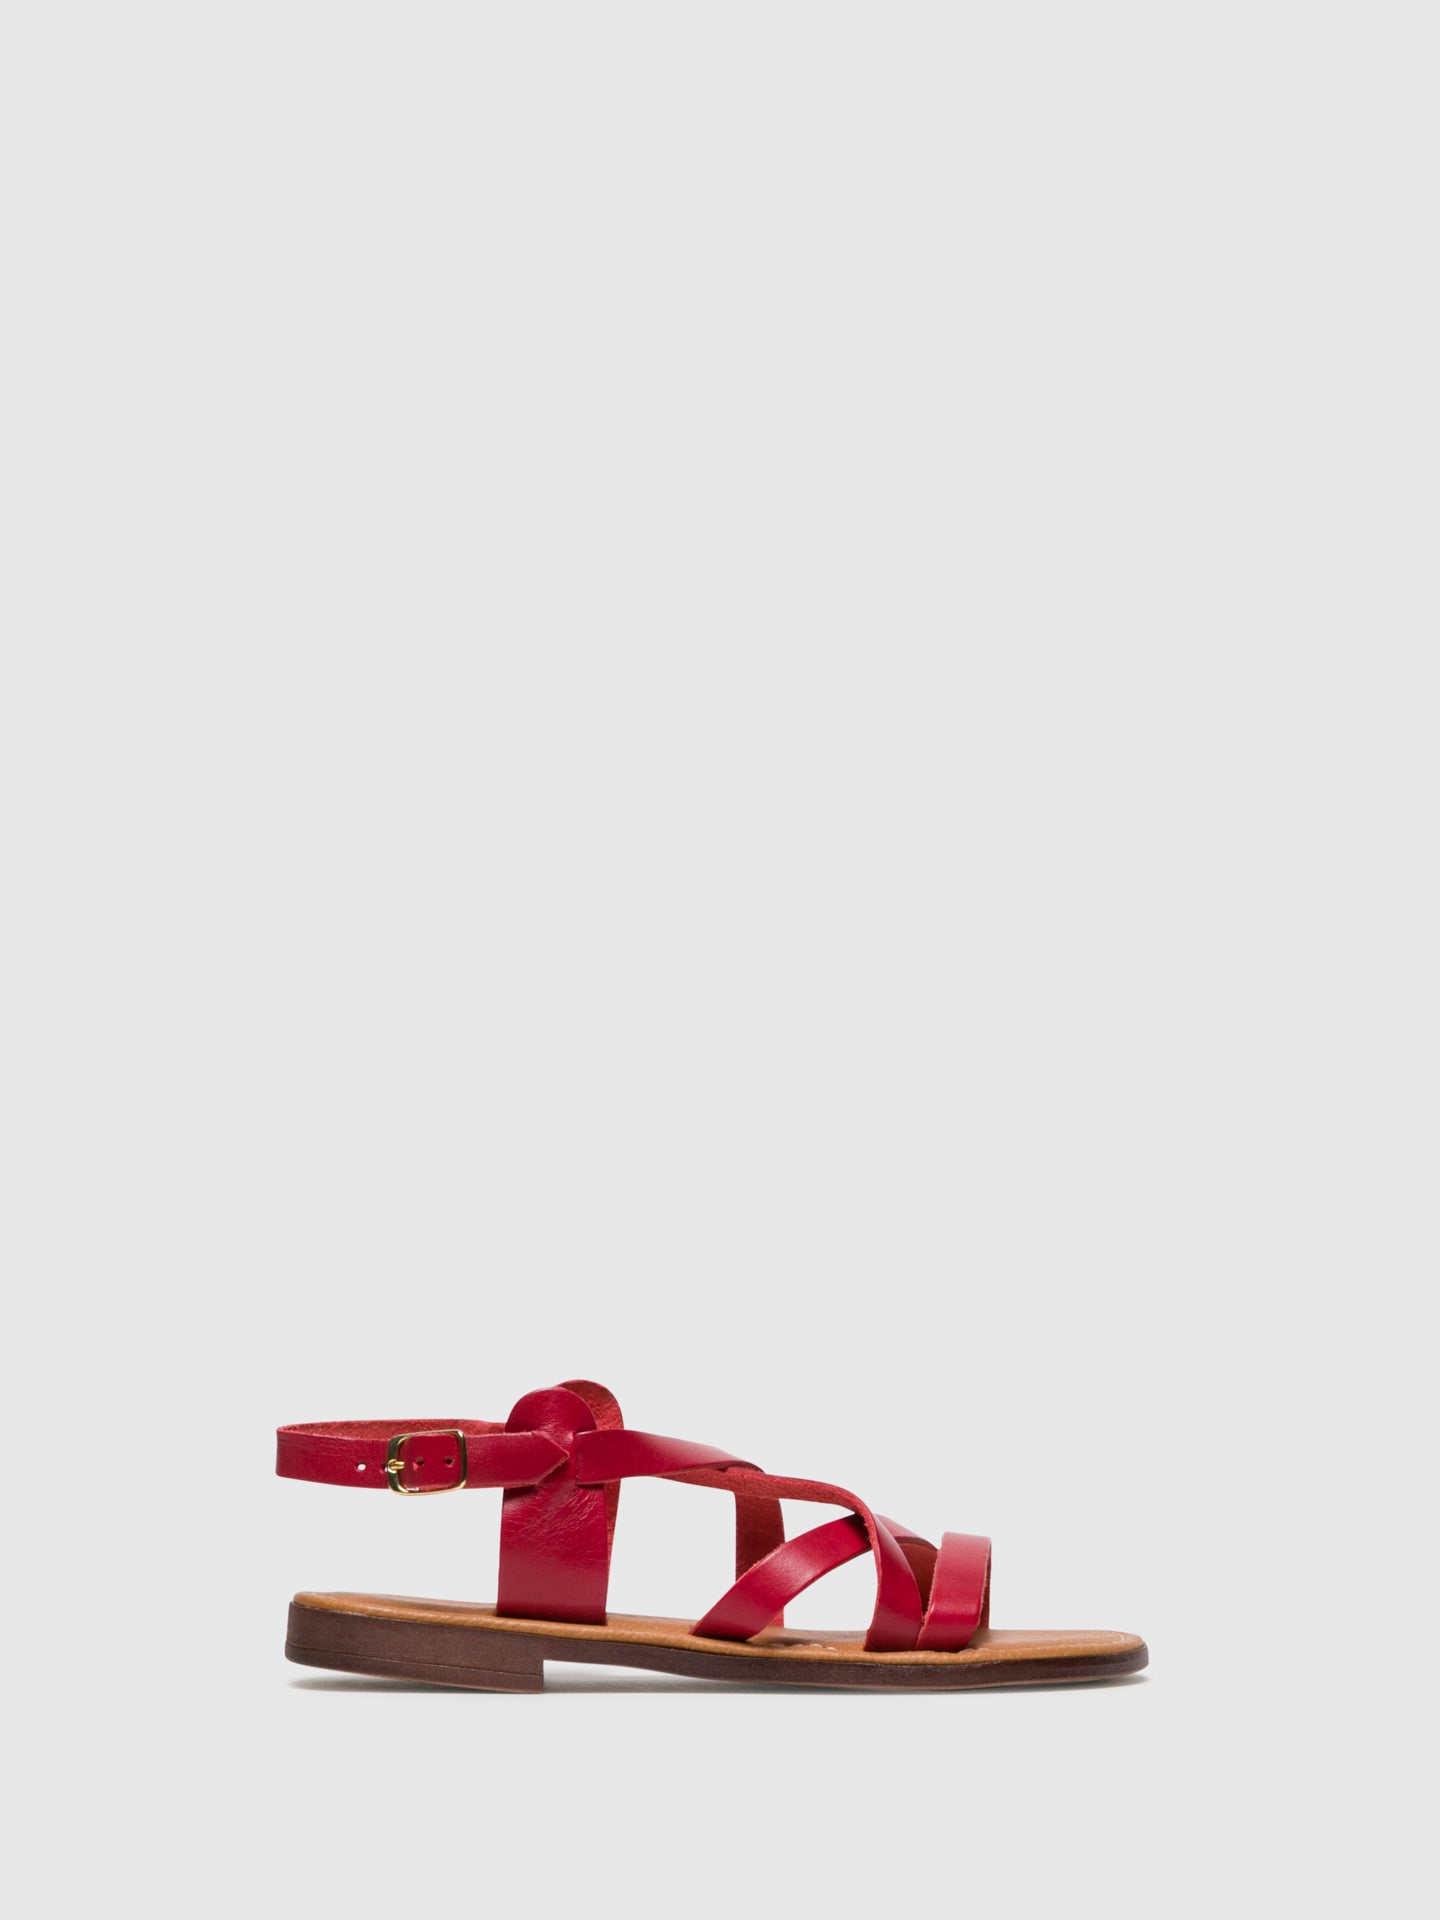 Bos&Co Red Sling-Back Sandals